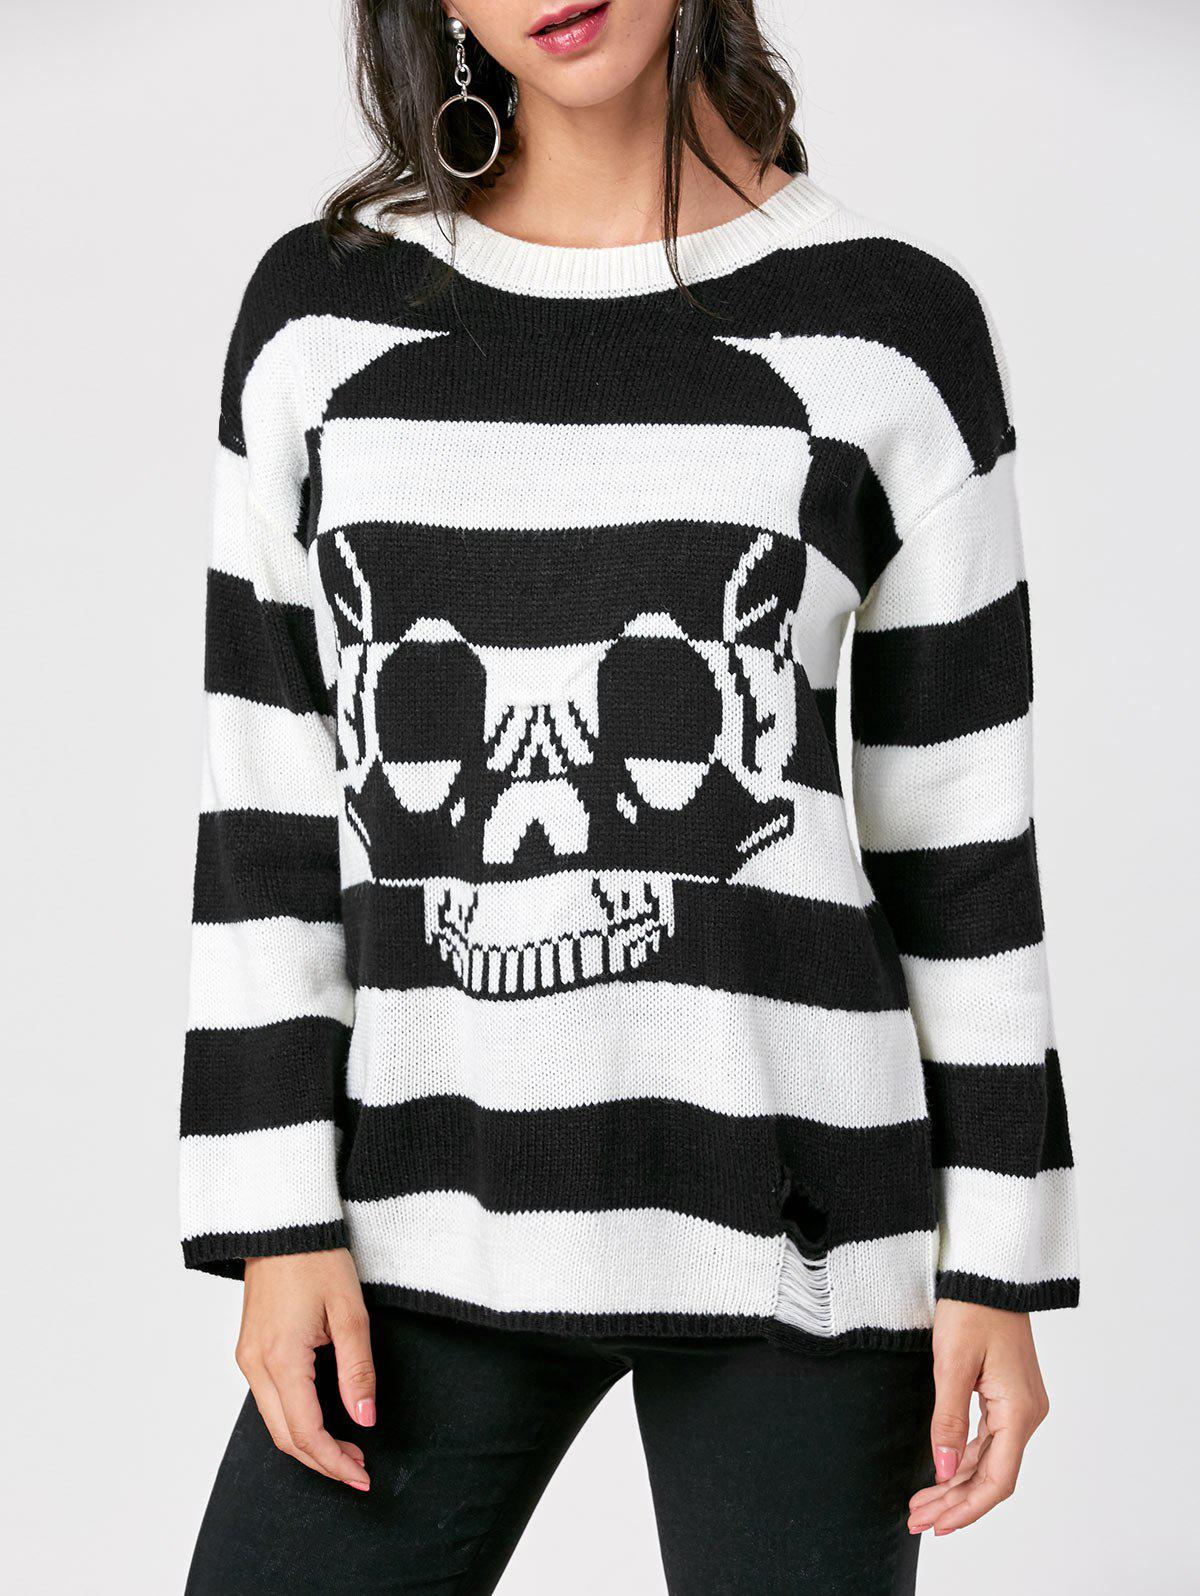 Monochrome Skull Striped SweaterWOMEN<br><br>Size: 2XL; Color: BLACK STRIPE; Type: Pullovers; Material: Acrylic; Sleeve Length: Full; Collar: Crew Neck; Style: Casual; Pattern Type: Striped; Season: Fall,Spring,Winter; Weight: 0.3900kg; Package Contents: 1 x Sweater;